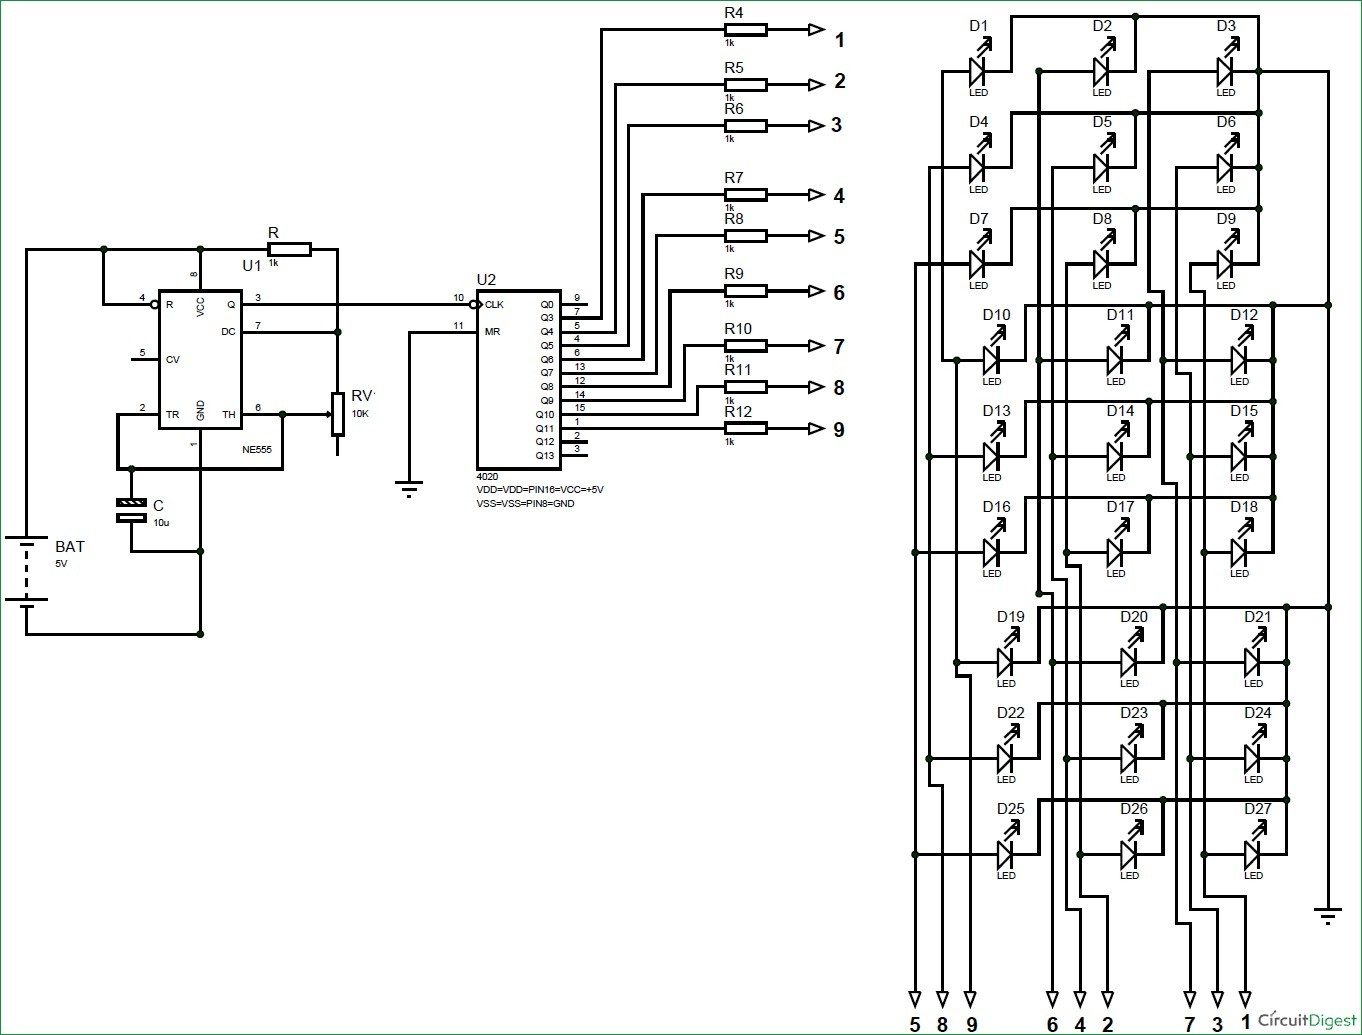 Sample Schematic Diagram Unique 3x3x3 Led Cube Circuit Diagram Using 555 Timer and Cd4020 Ic